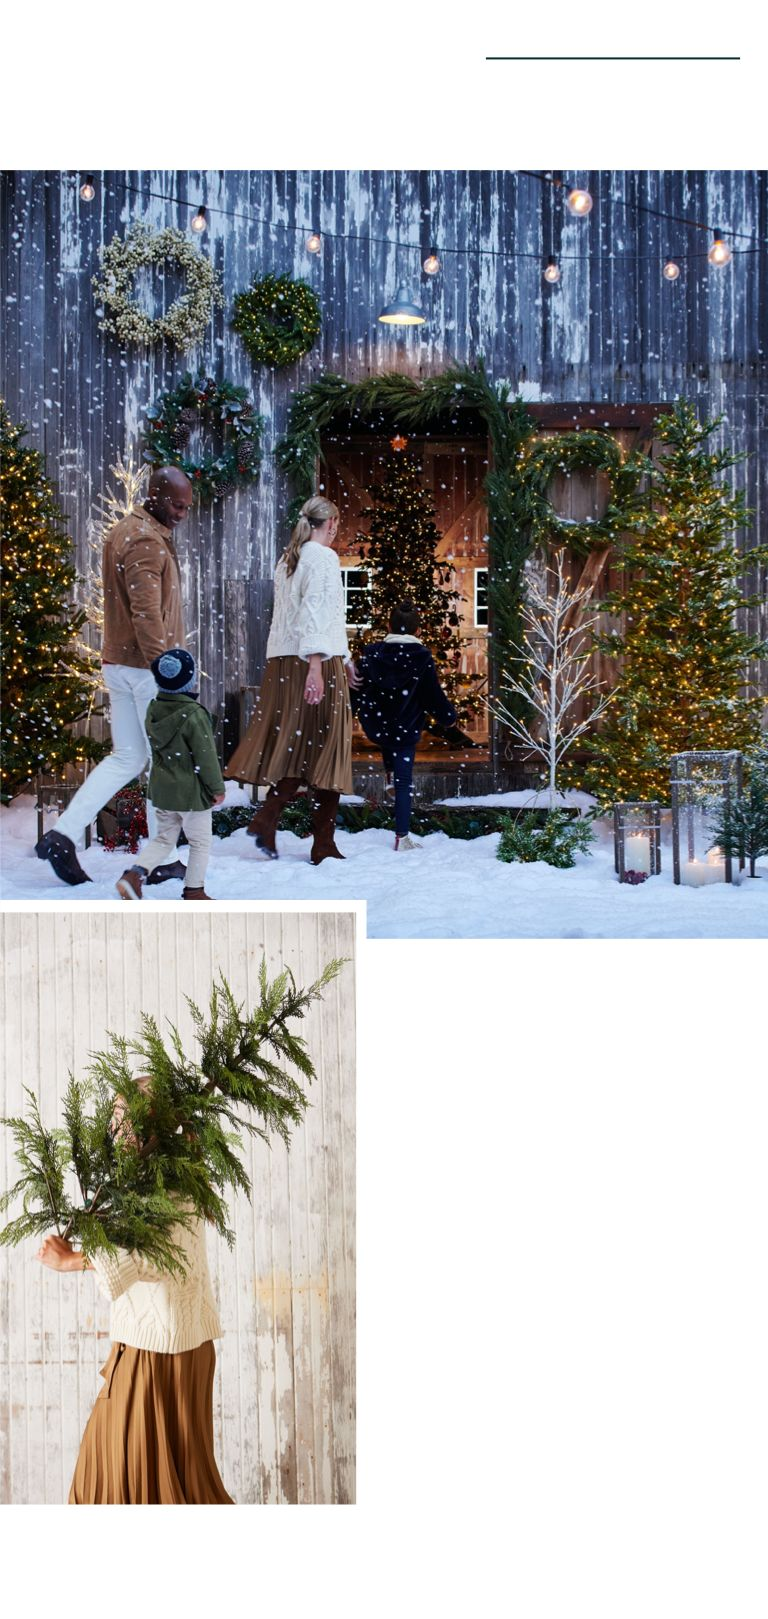 Christmas Decorations For Home Table 2020 Crate And Barrel Canada